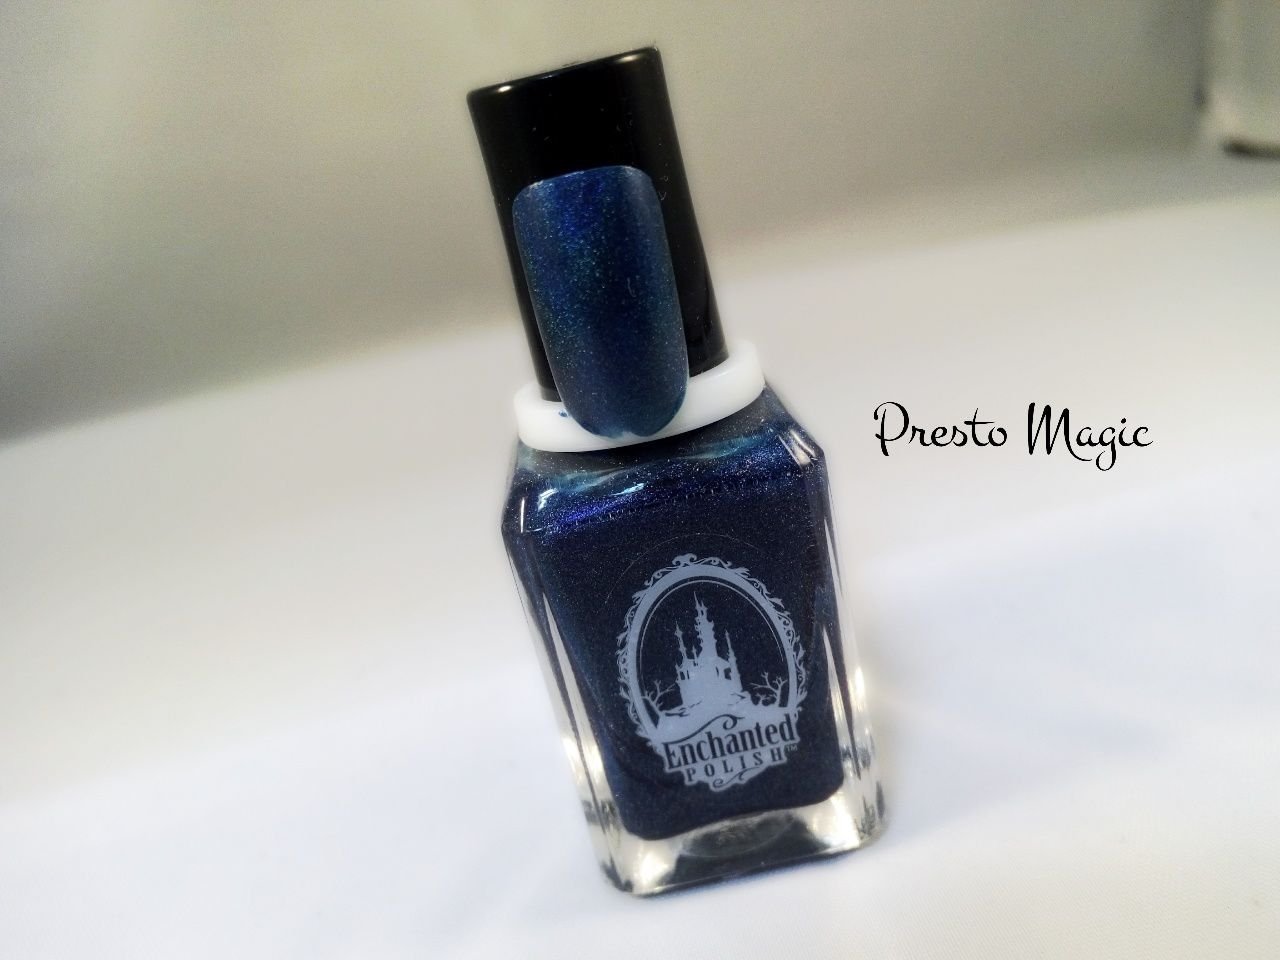 Presto Magic - Enchanted Polish